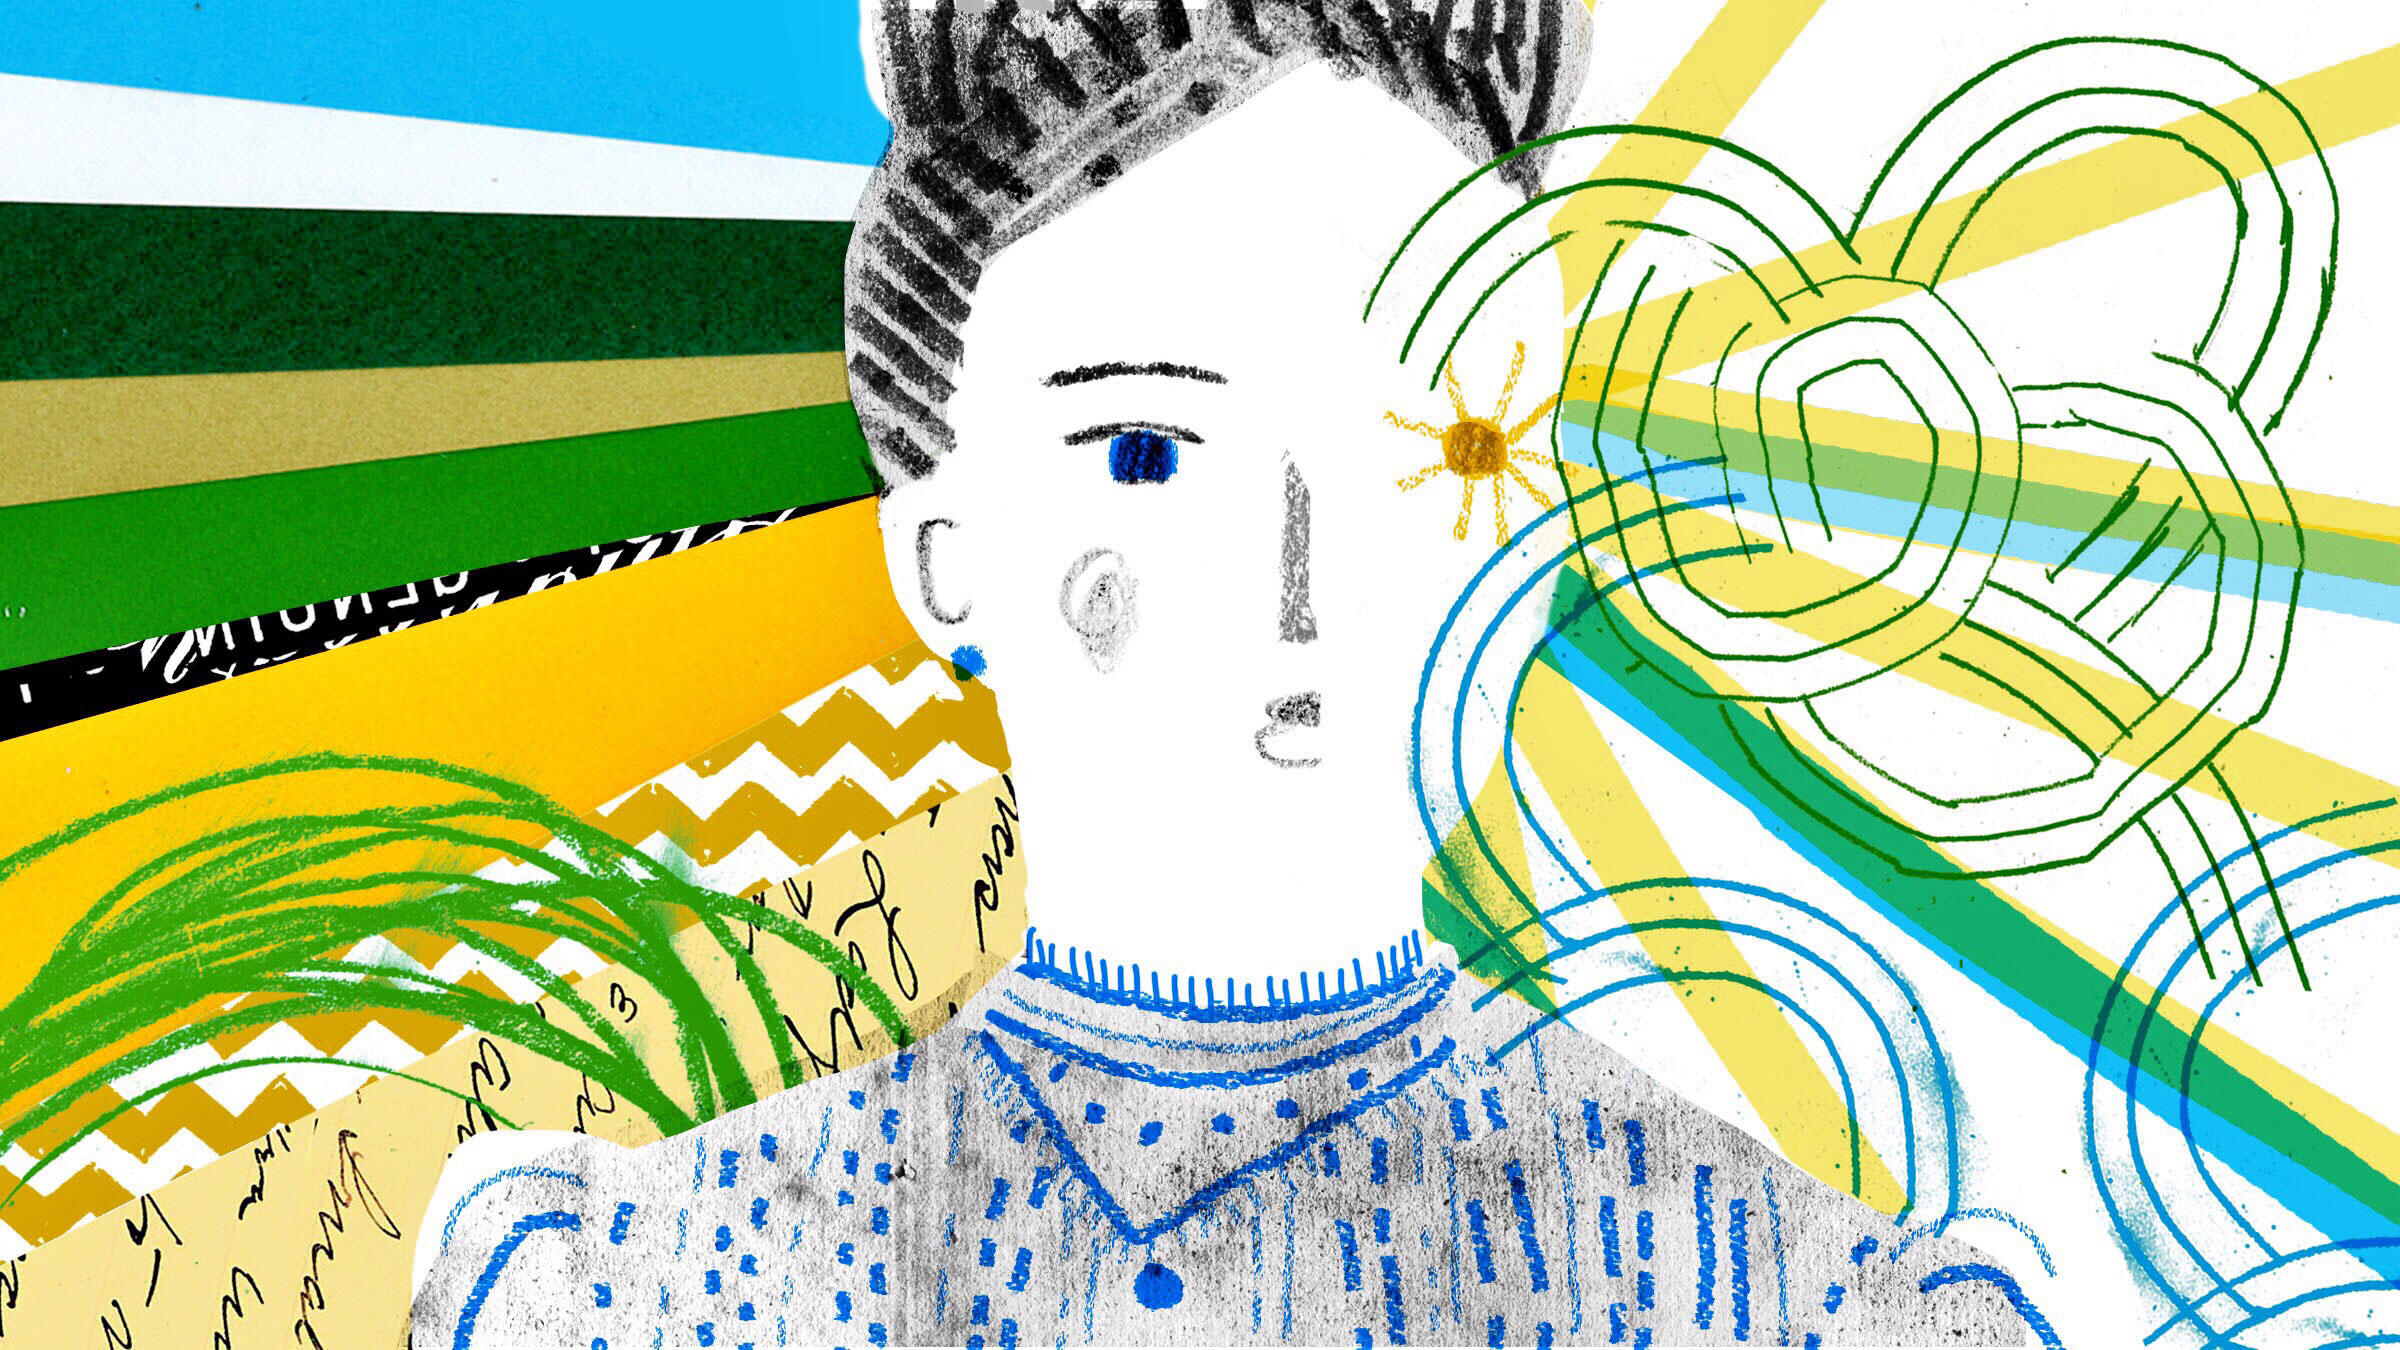 An artistic representation of amateur climate scientist Eunice Foote, who discovered the greenhouse effect in the 1850s. No known photographs of Foote exist as of publication. Illustration: Andrea D'Aquino